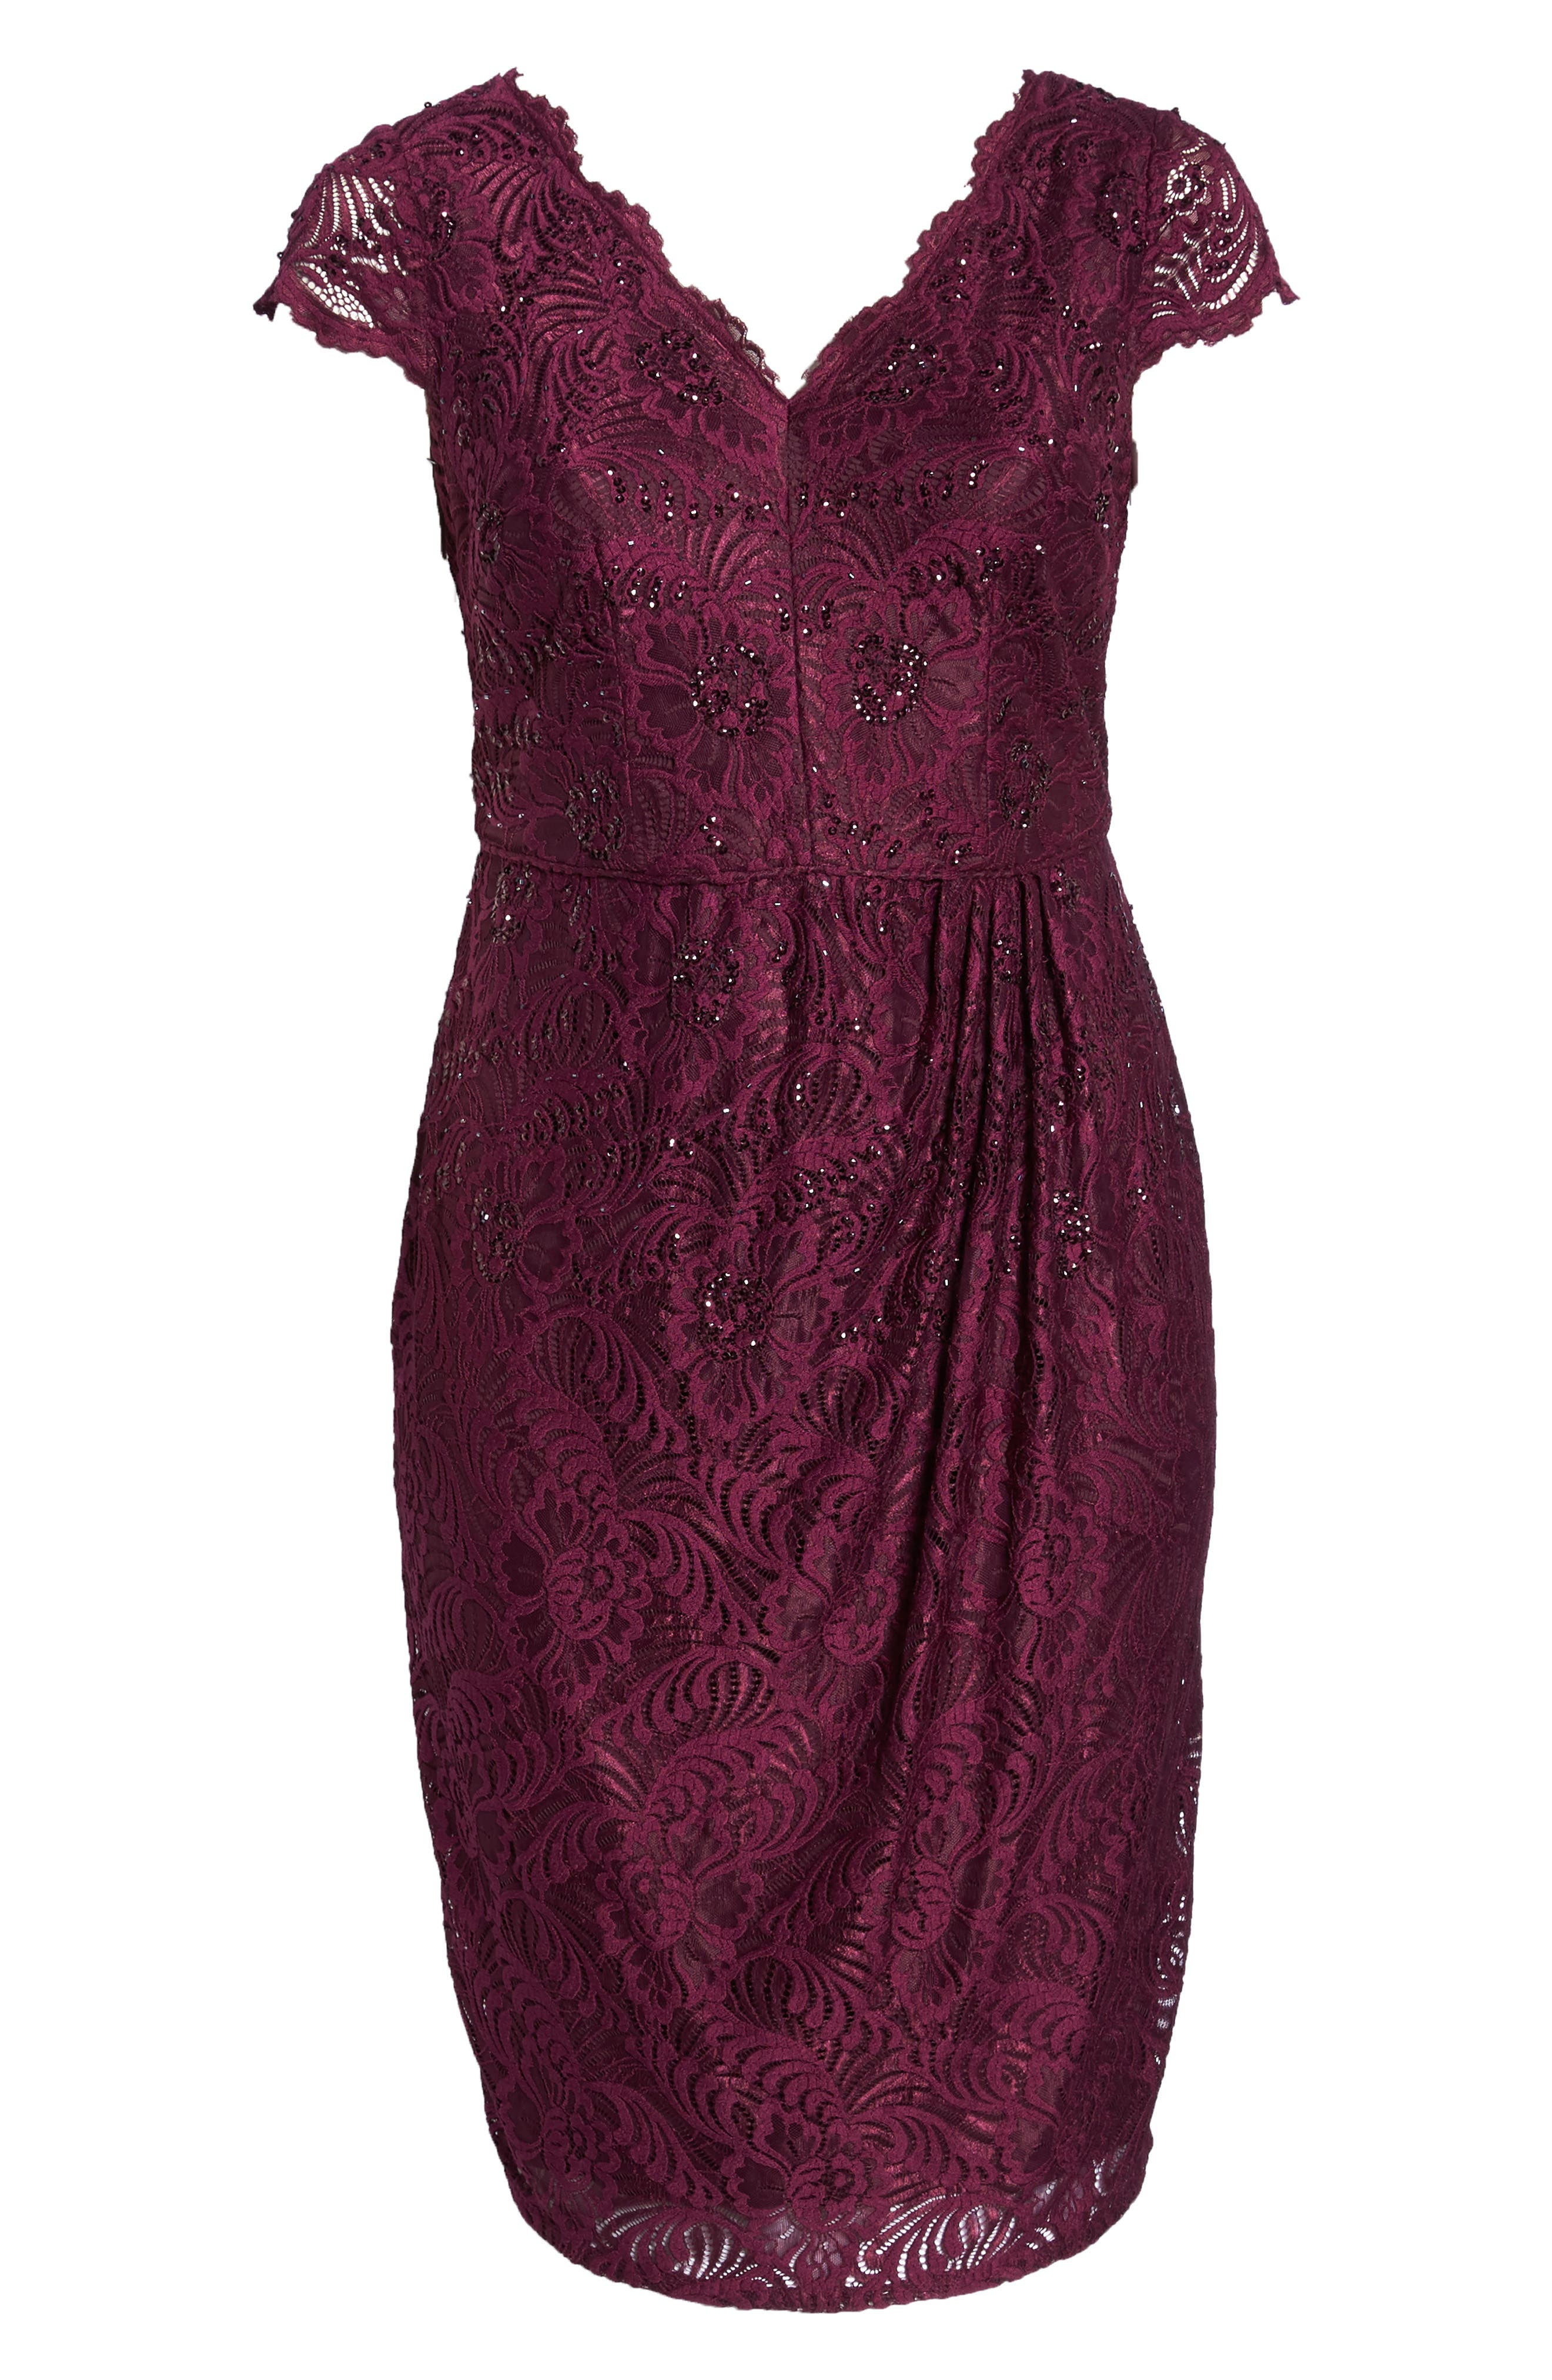 Embellished Stretch Lace Sheath Dress,                             Alternate thumbnail 7, color,                             Mulberry